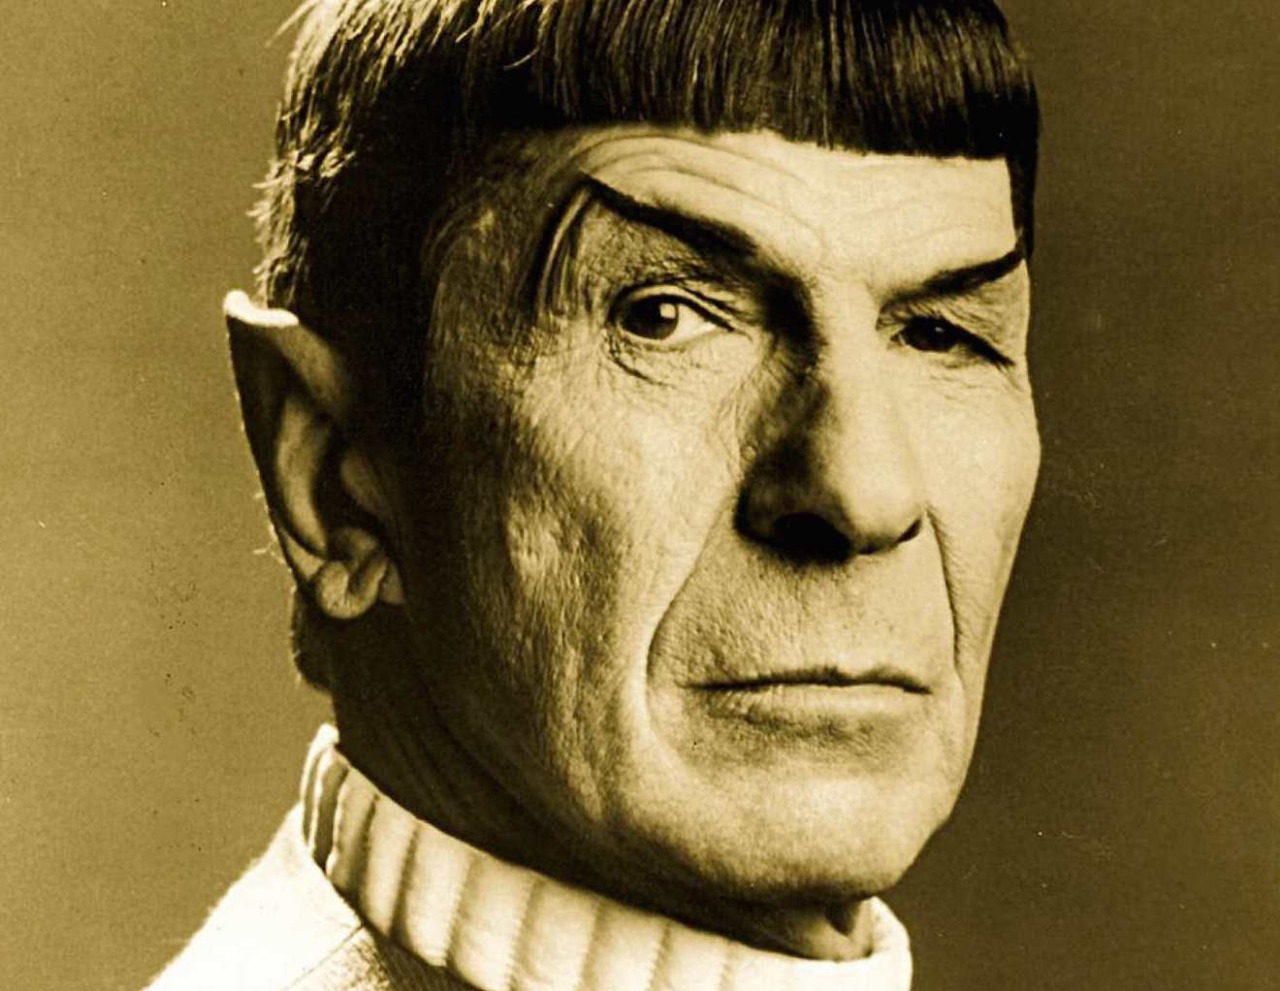 Mr Spock spelas av Leonard Nimoy Film: Star Trek